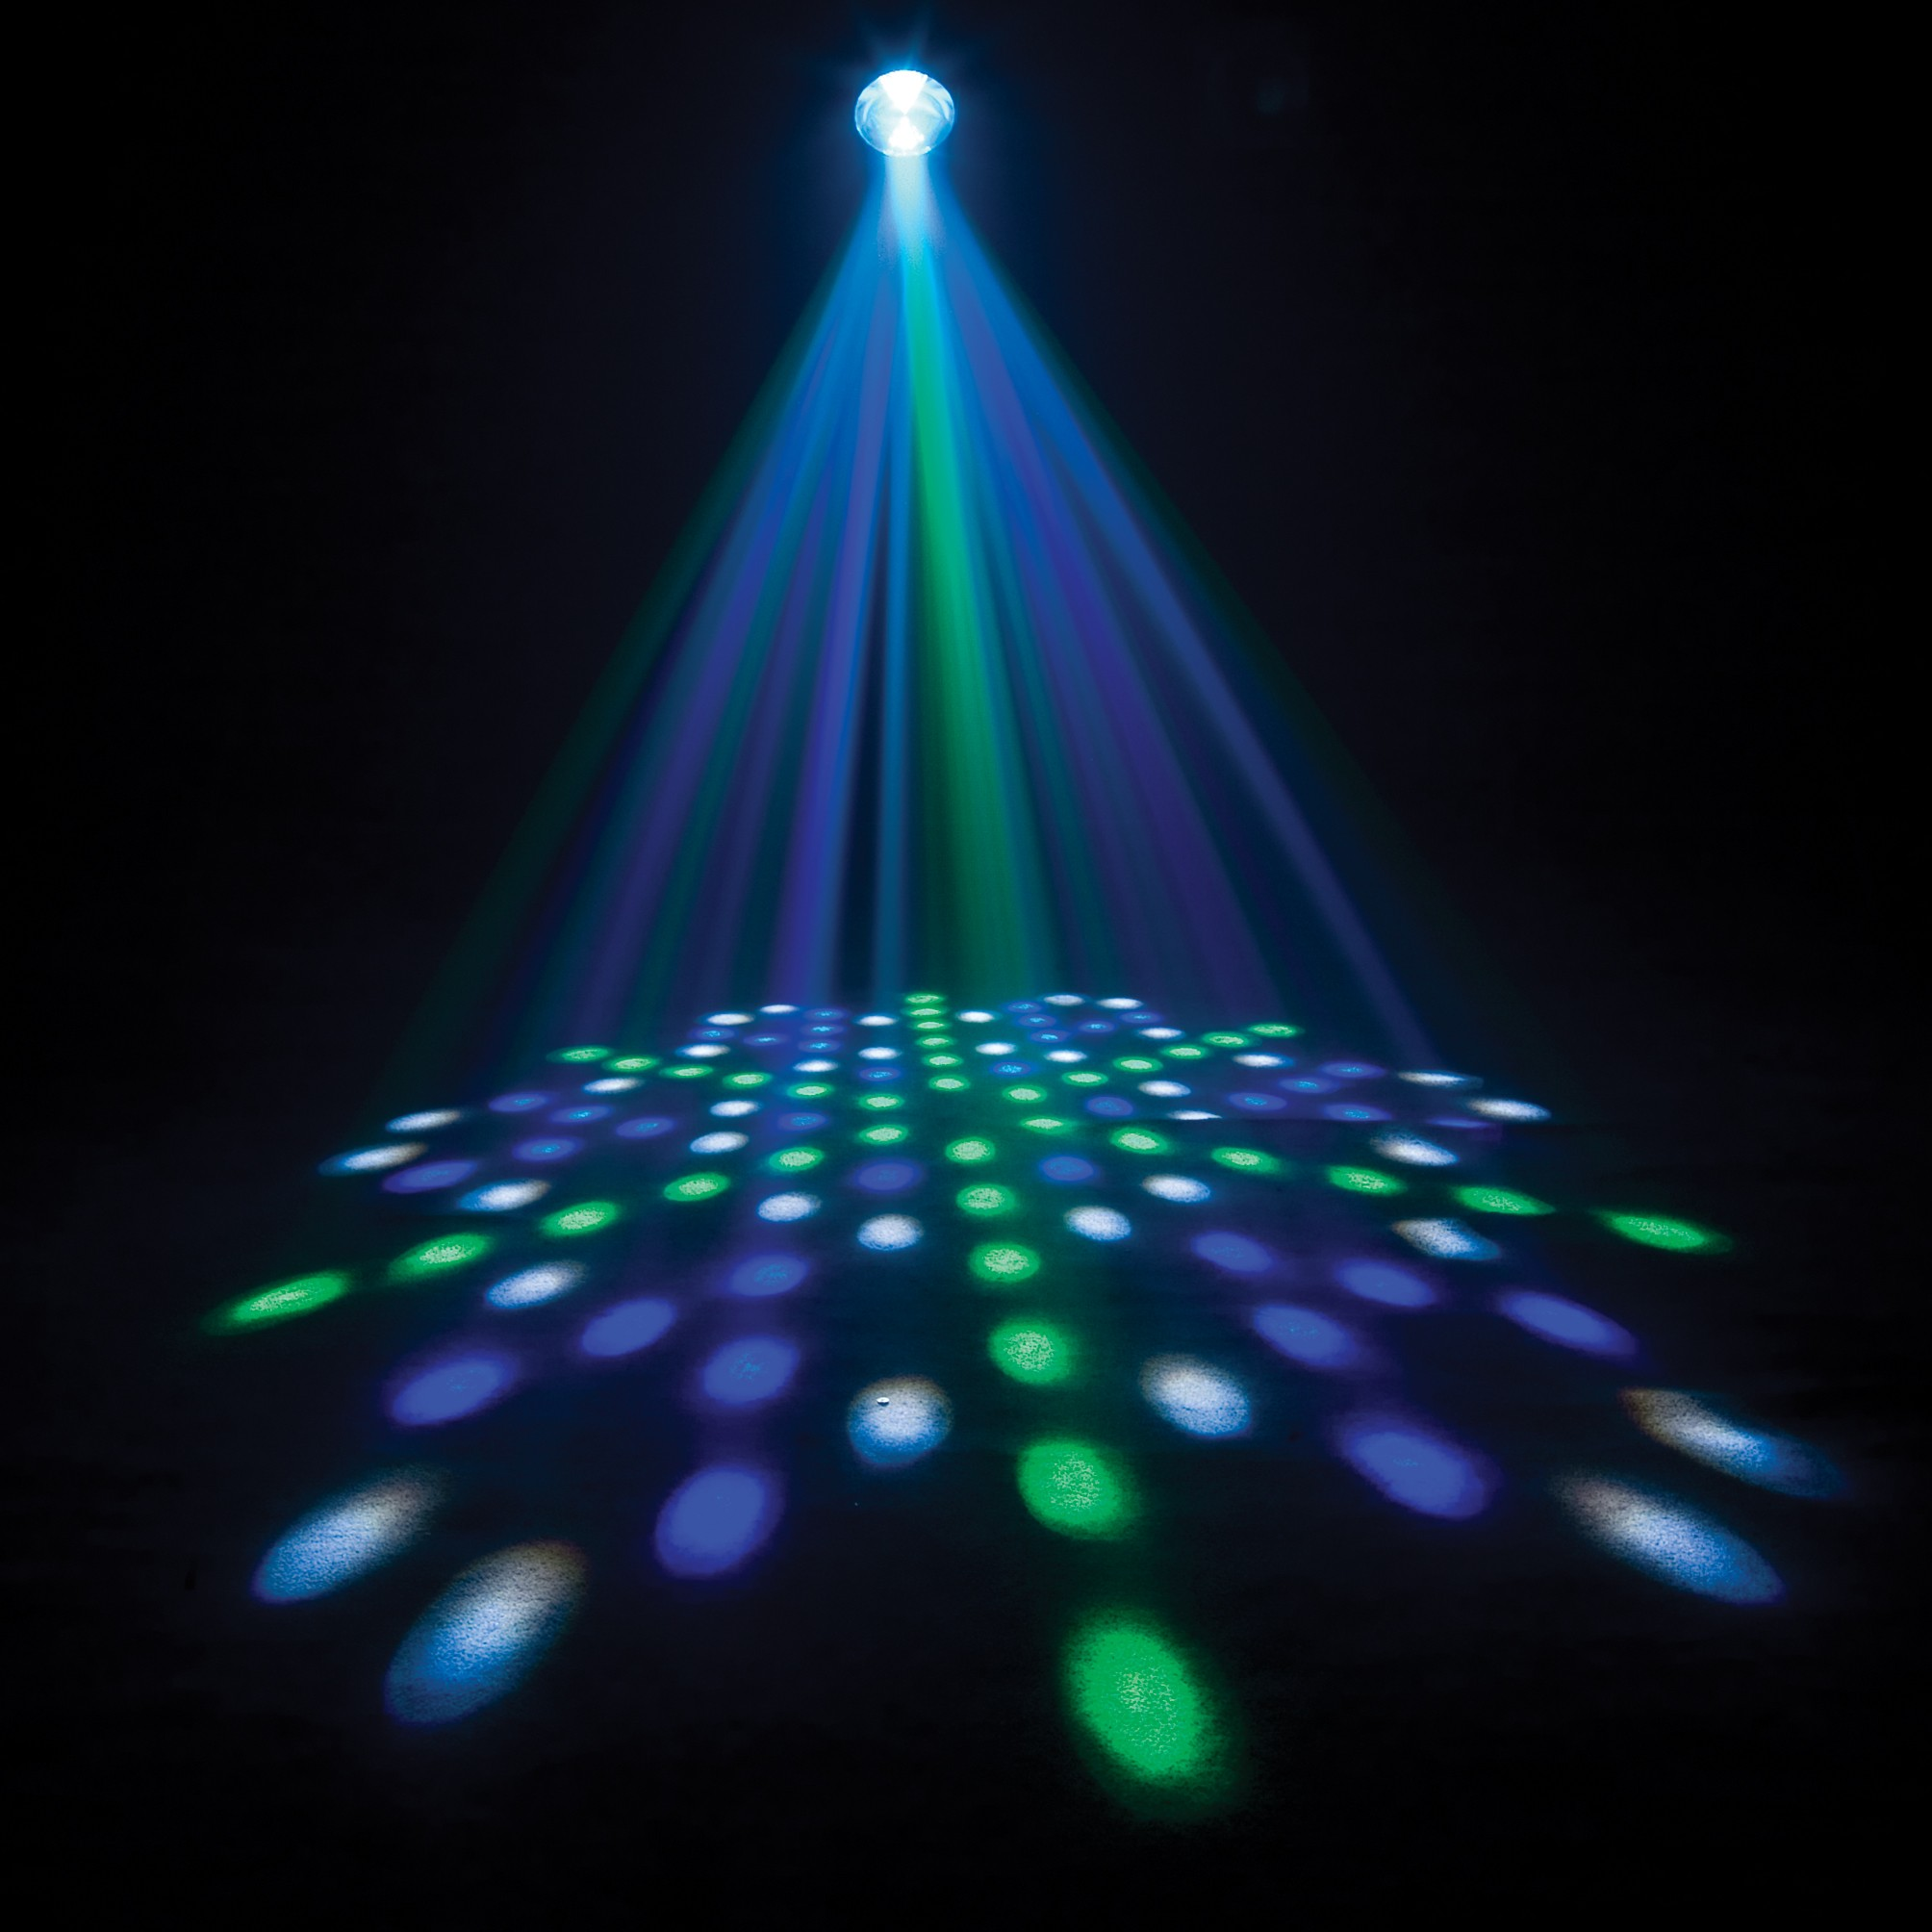 pack within x bh size party decor effects led lights dj lighting american instant pak light